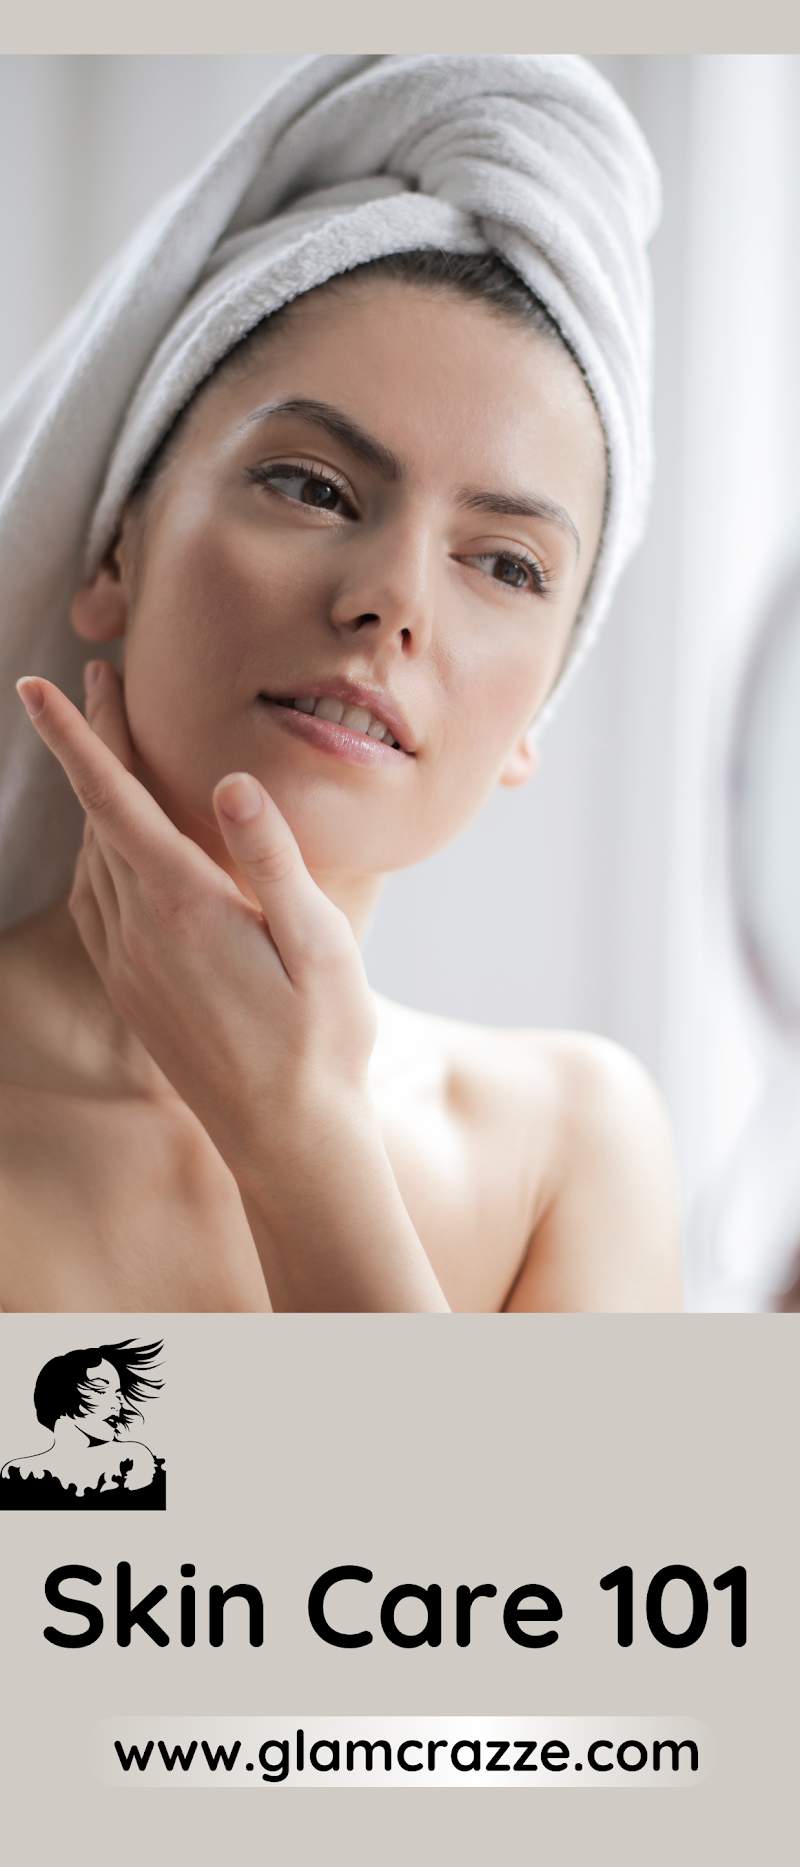 Skin Care 101 - 5 Things You Need to Know About Phenoxyethanol